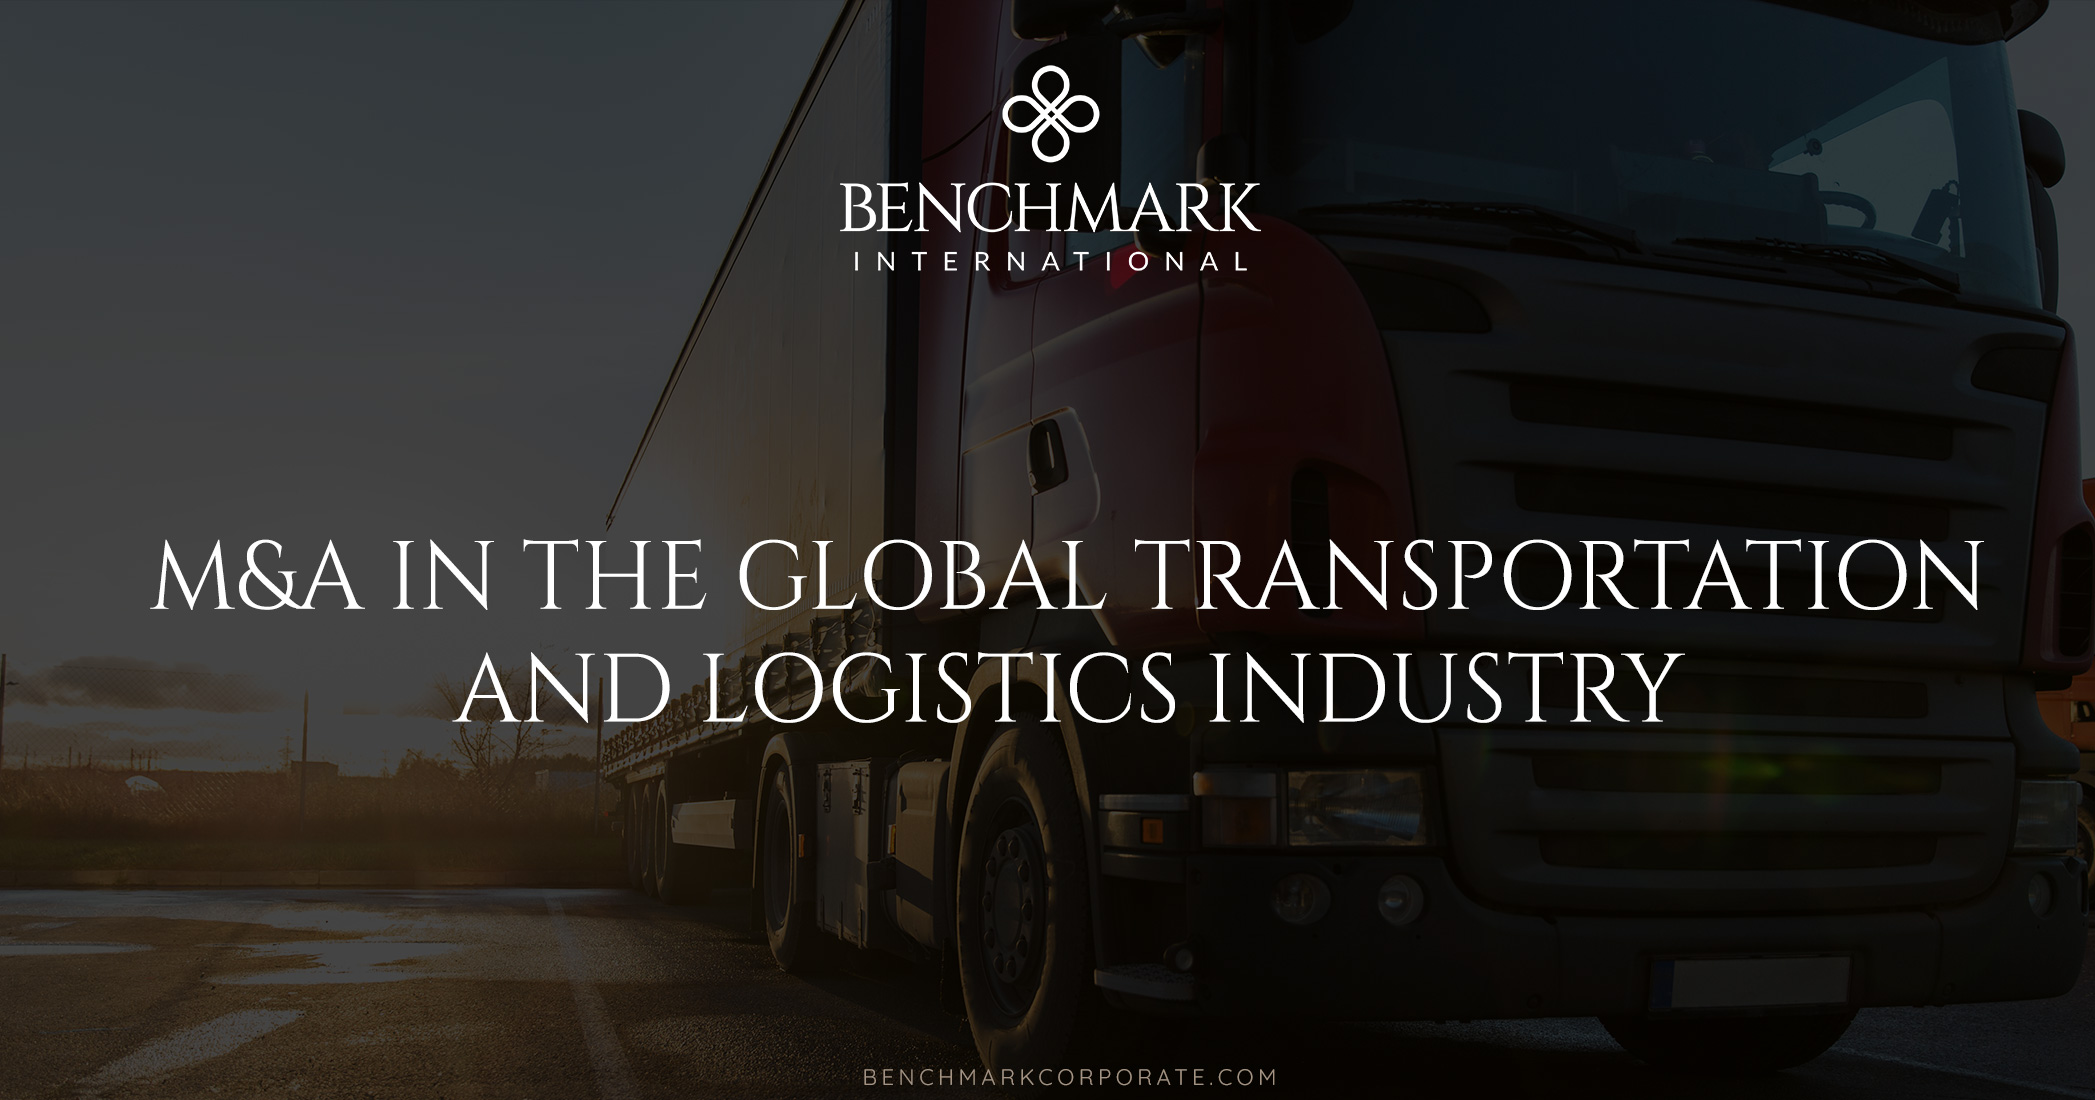 M&A In The Global Transportation and Logistics Industry